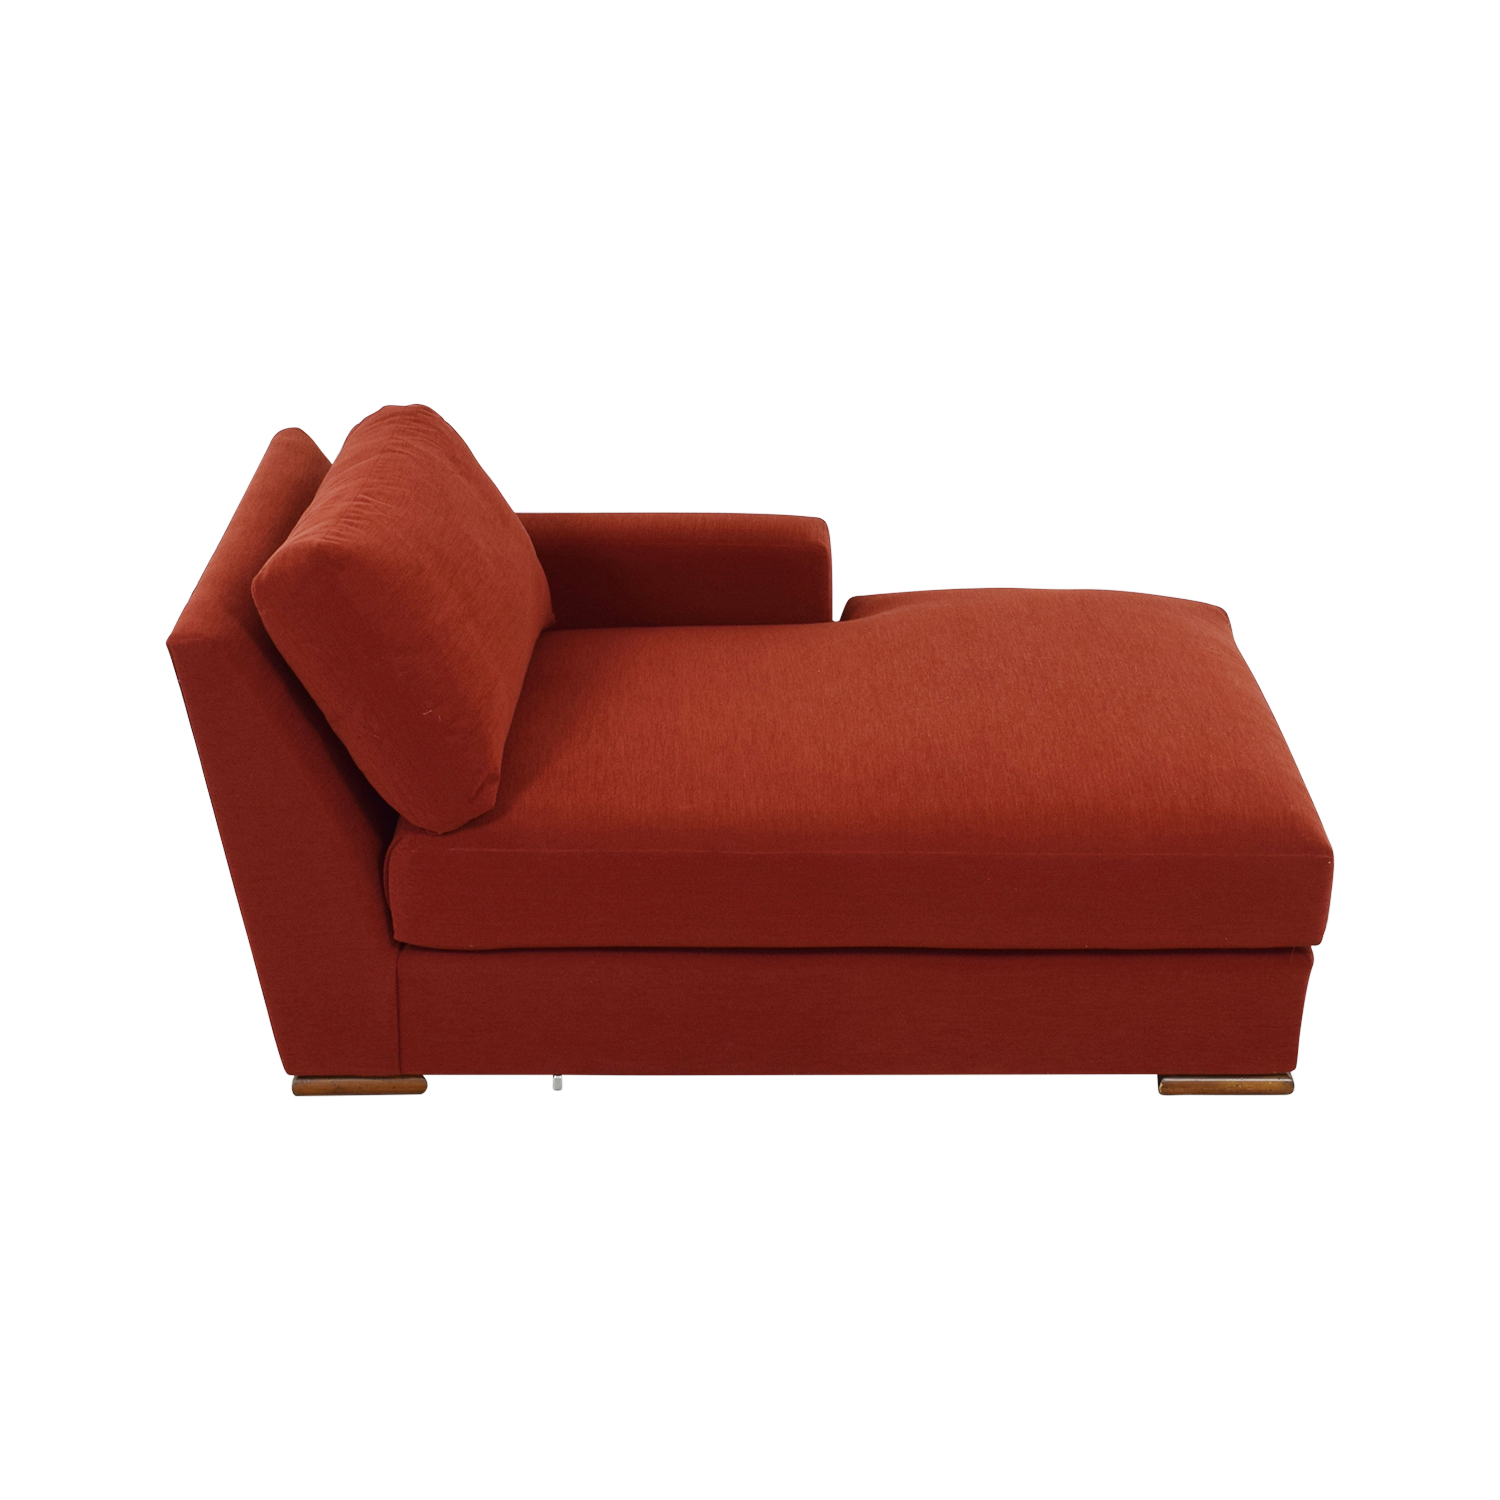 Kravet Kravet Orange Chaise dimensions